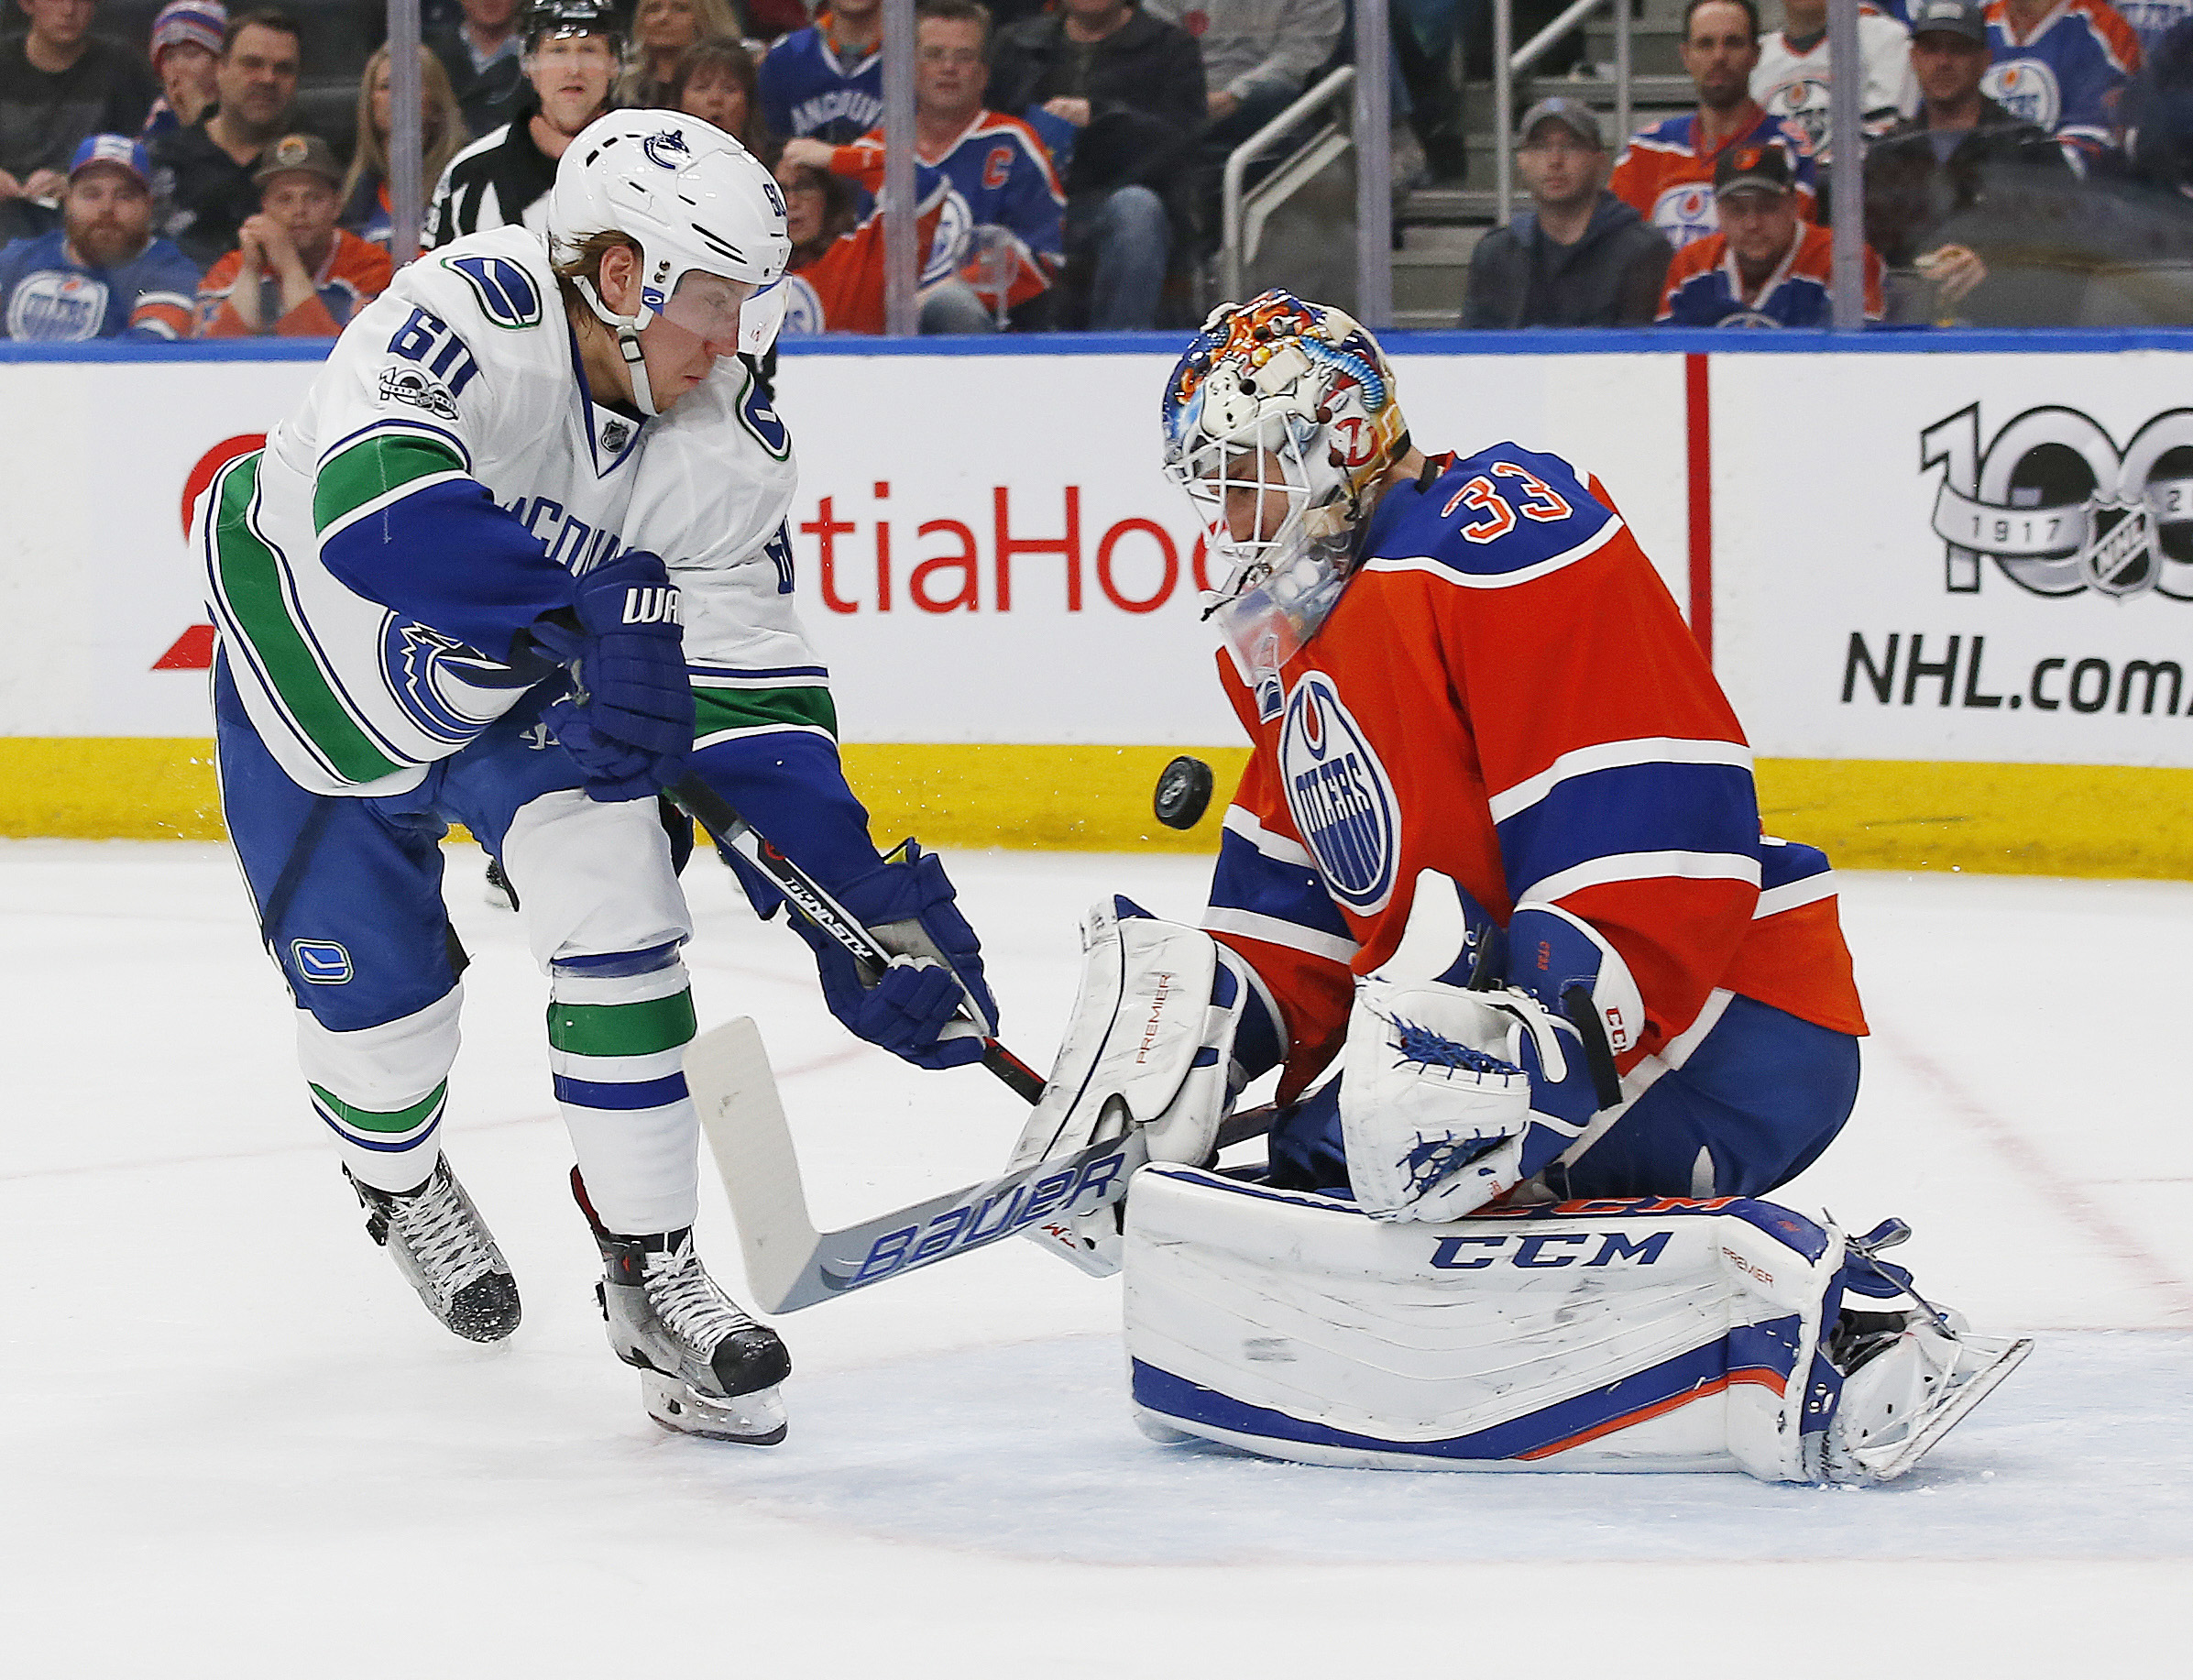 9955307-nhl-vancouver-canucks-at-edmonton-oilers